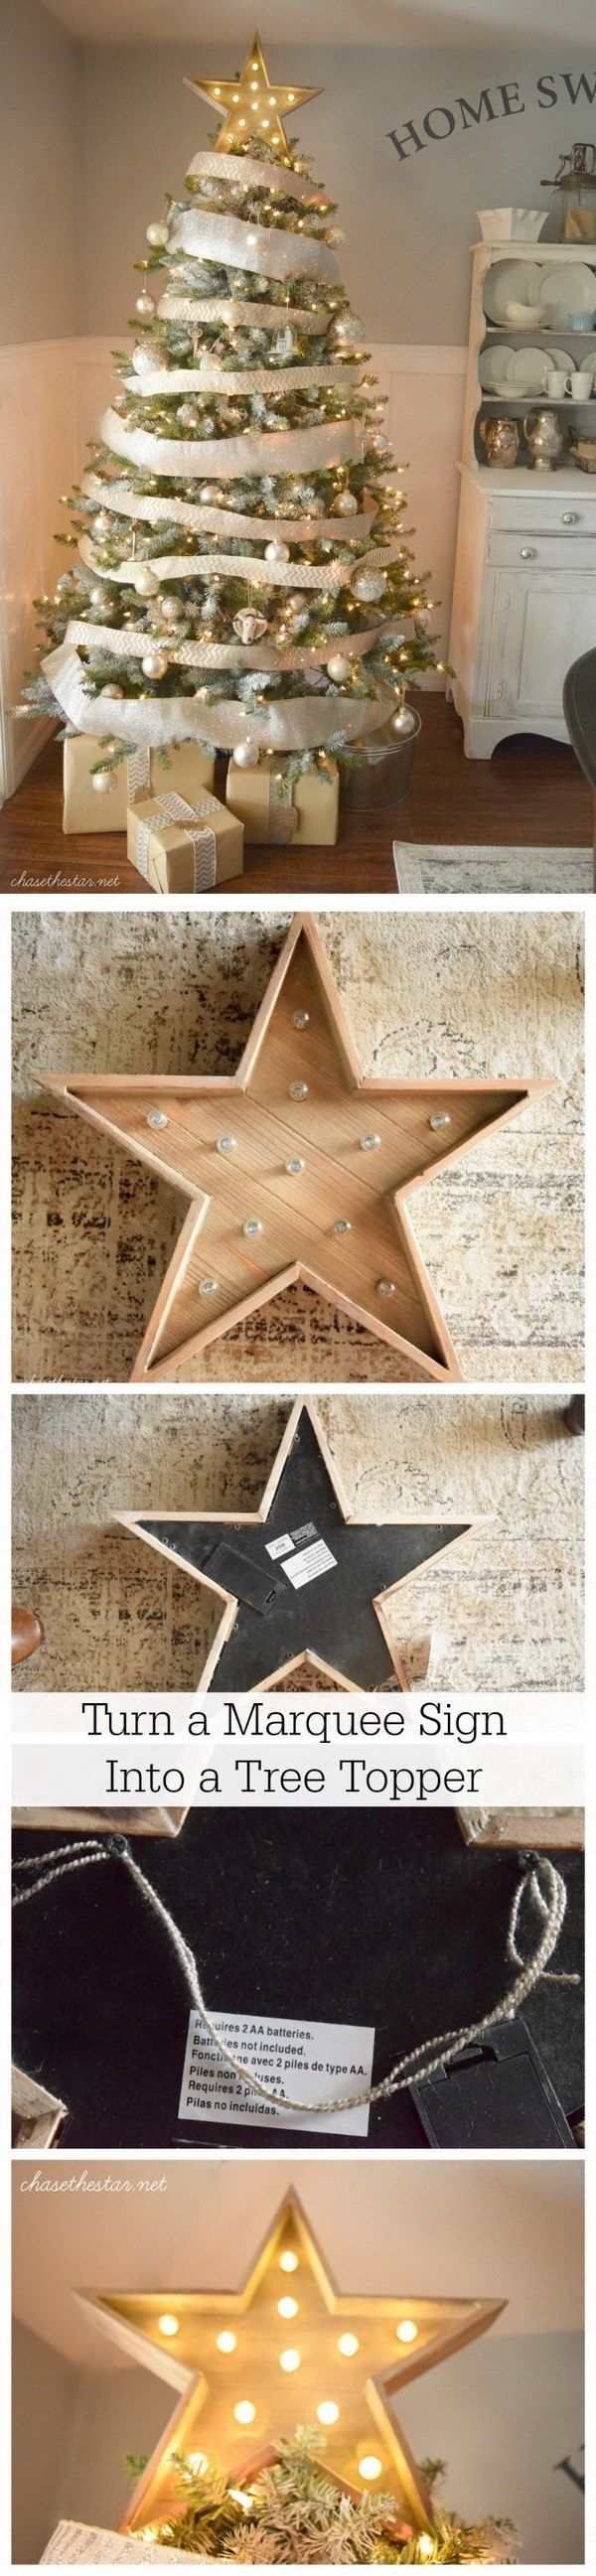 Marquee Star Tree Topper. Give your Christmas tree some extra glow with our marquee-style topper.